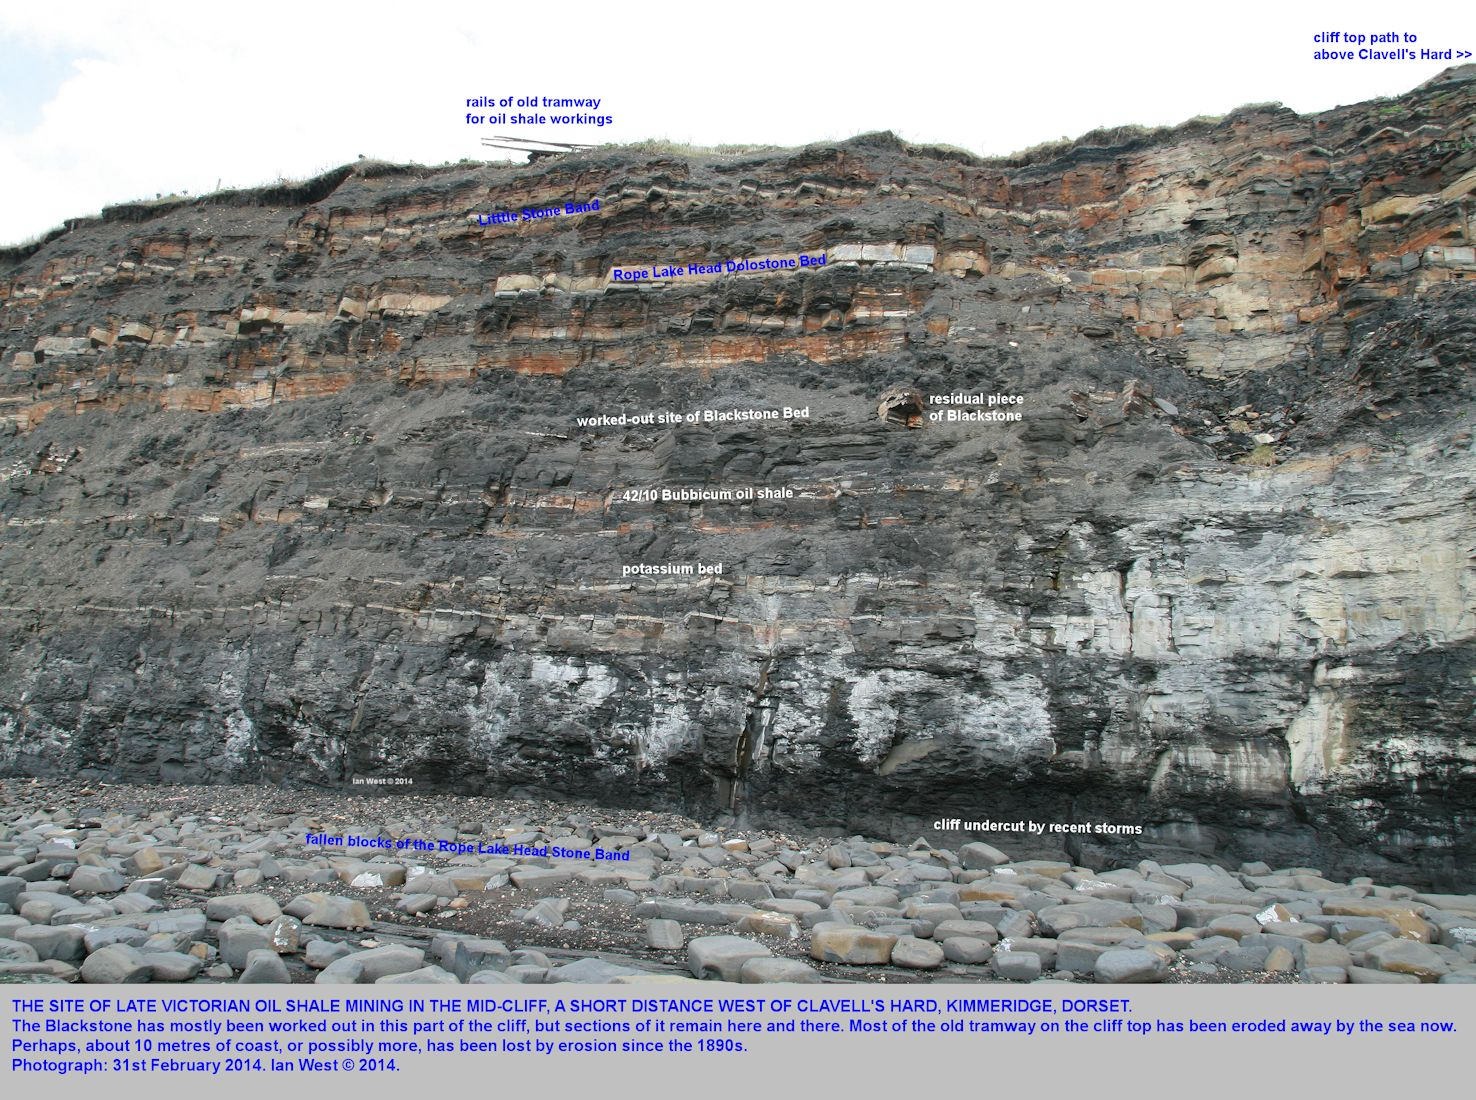 Worked-out Kimmeridge Oil Shale or Blackstone in the cliffs, a short distance west of Clavell's Hard, Kimmeridge, Dorset, 31st February 2014